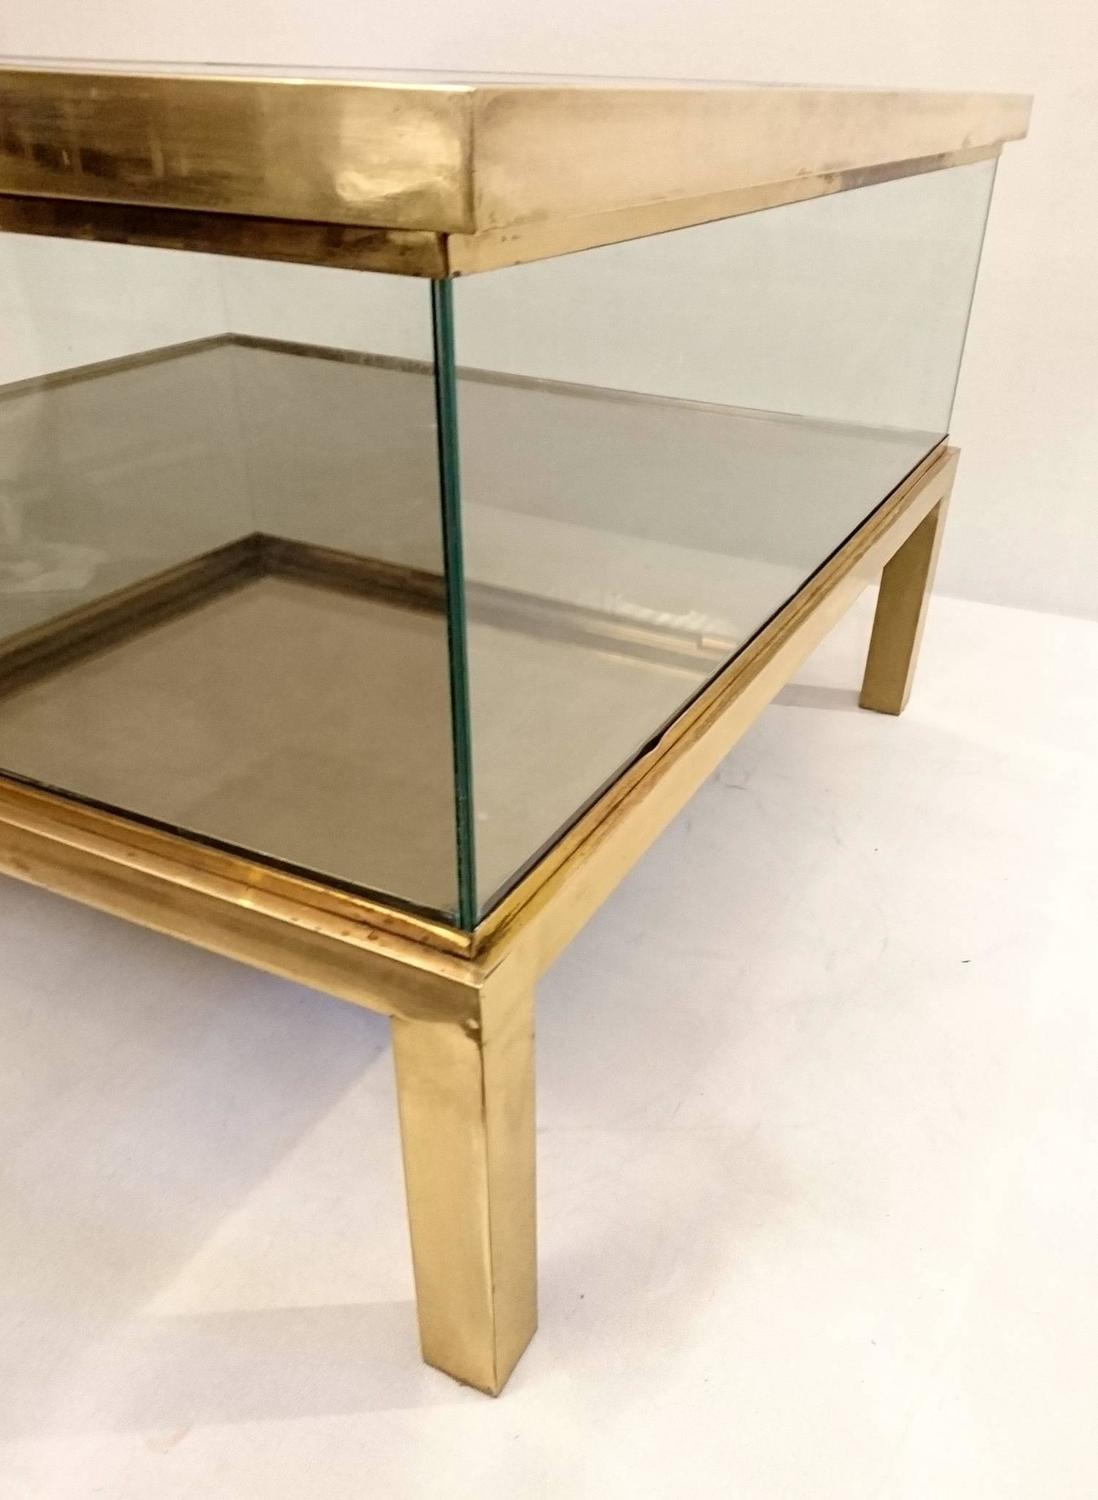 Couchtisch Glas Verschiebbar Sliding Top Coffee Table Glass And Brass For Sale At 1stdibs